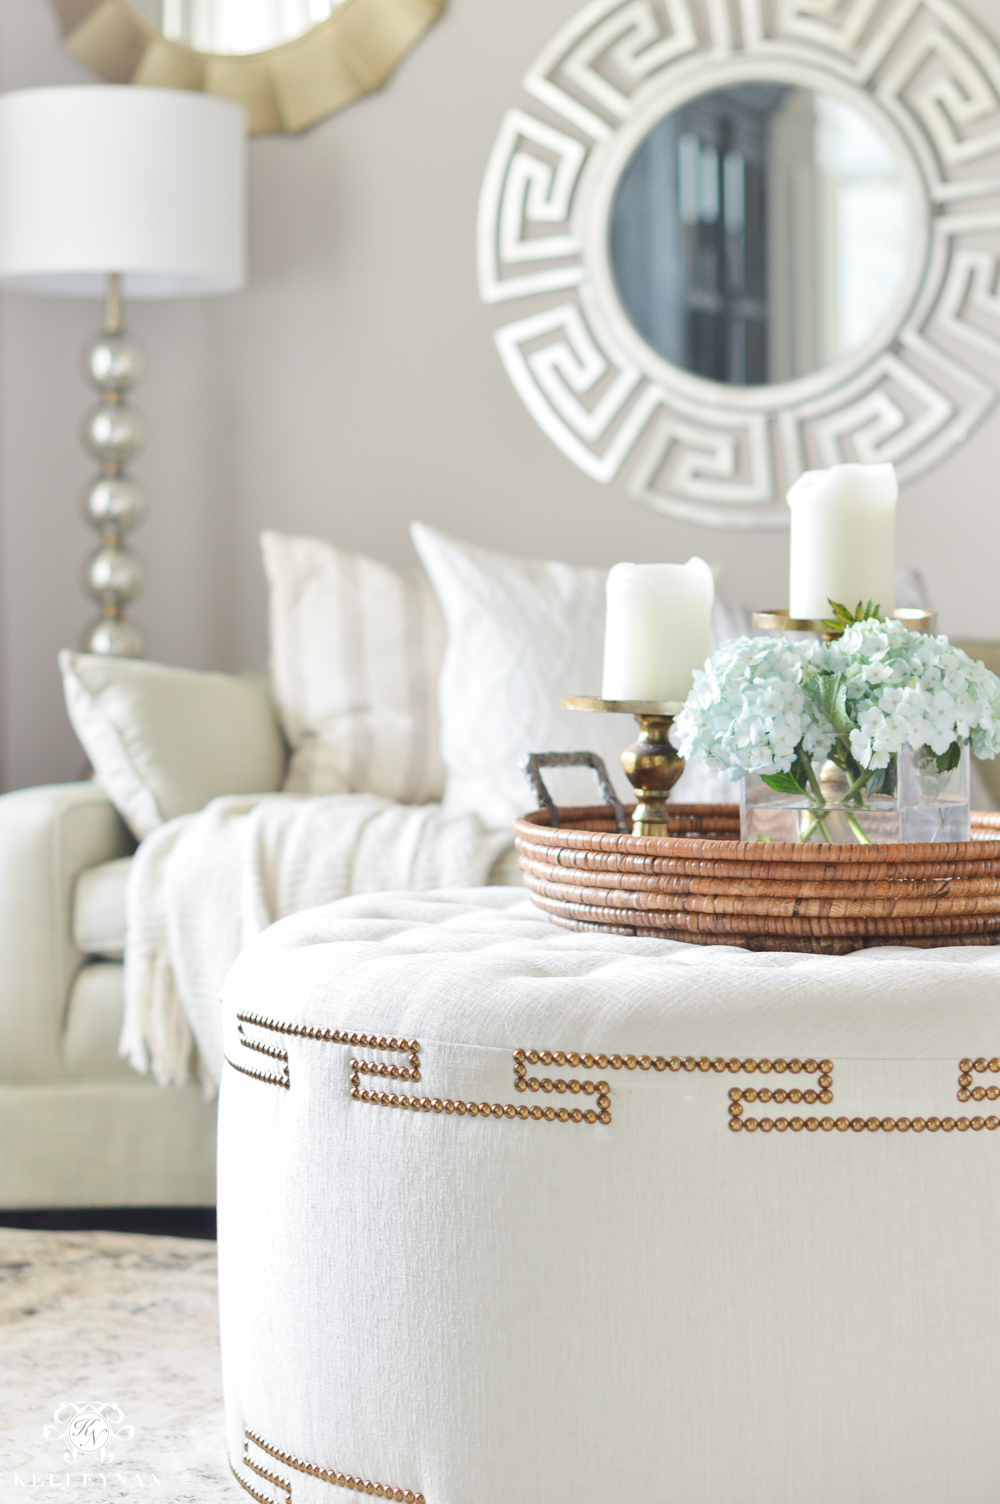 Shades of Summer Home Tour with Neutrals and Naturals-tufted coffee table ottoman in sitting room with mirror gallery wall